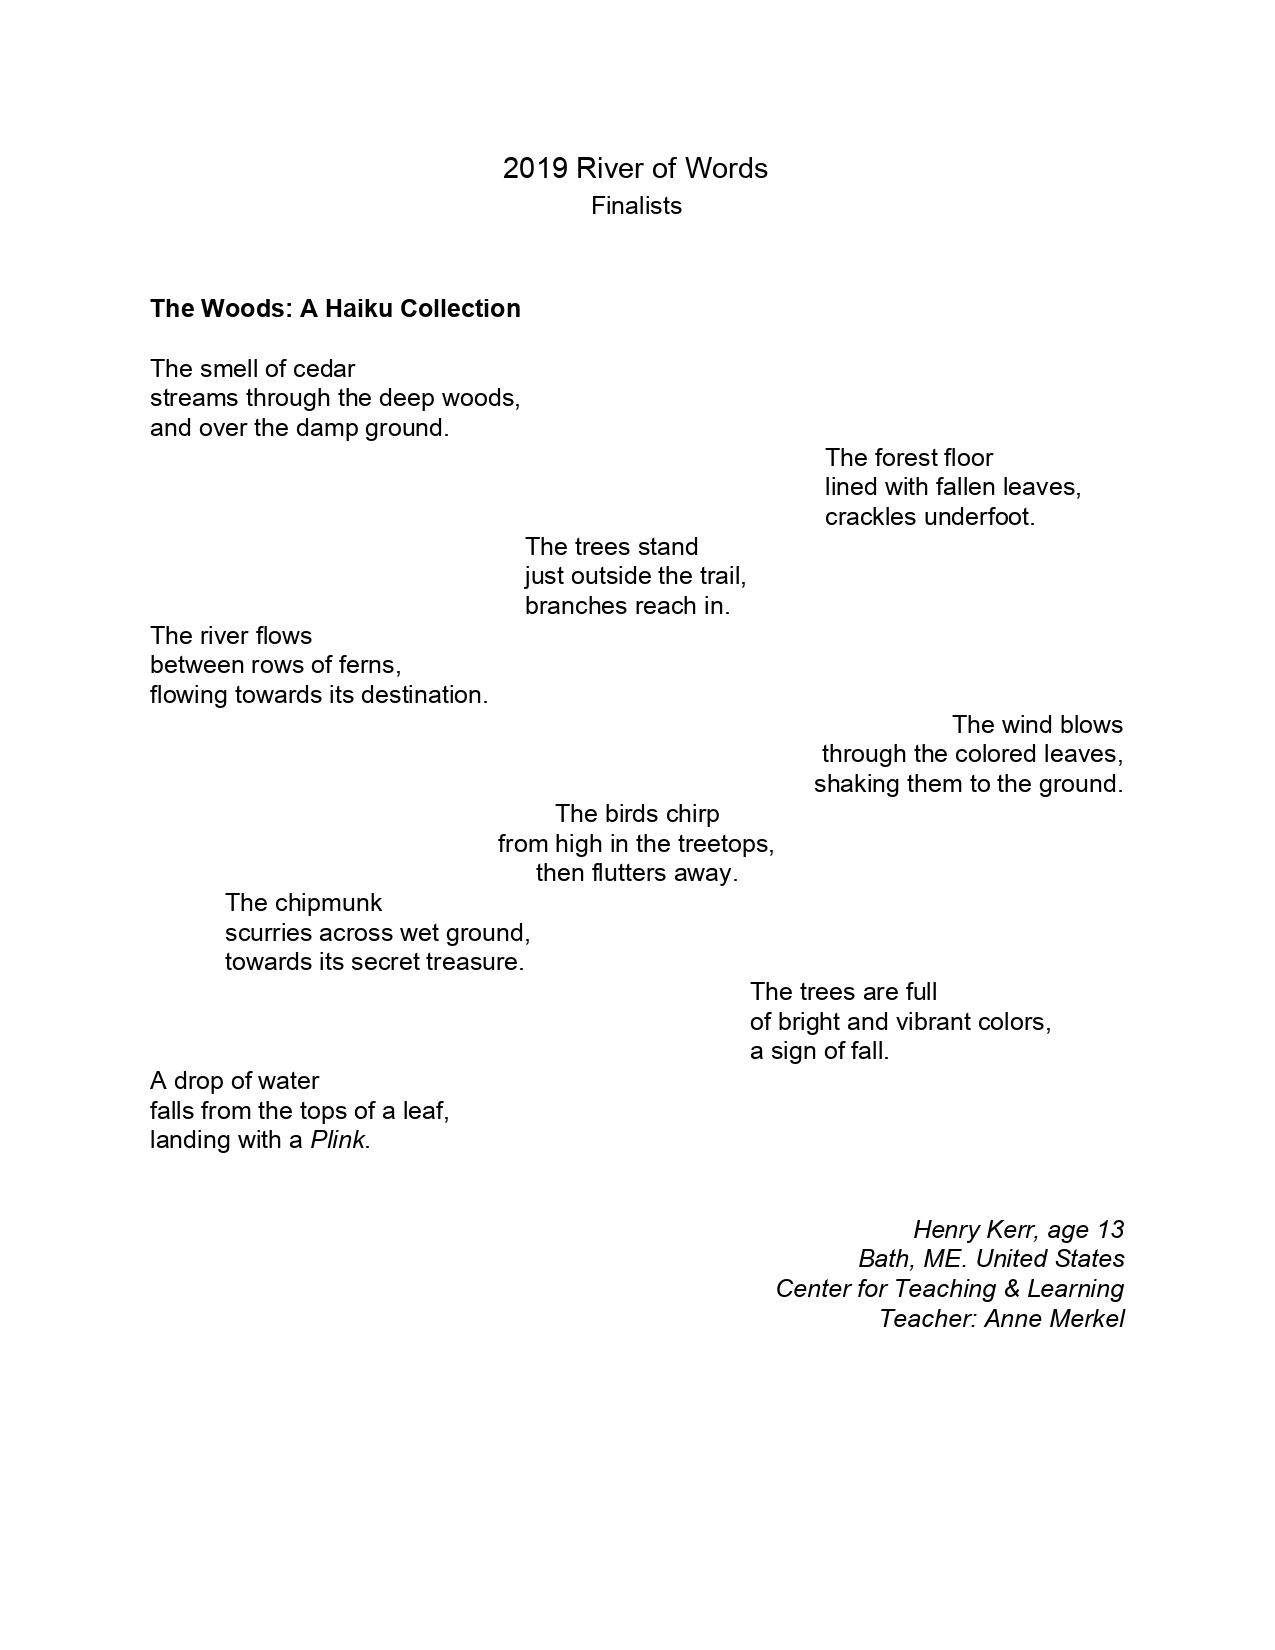 2019 River of Words Poetry Winners and Finalists